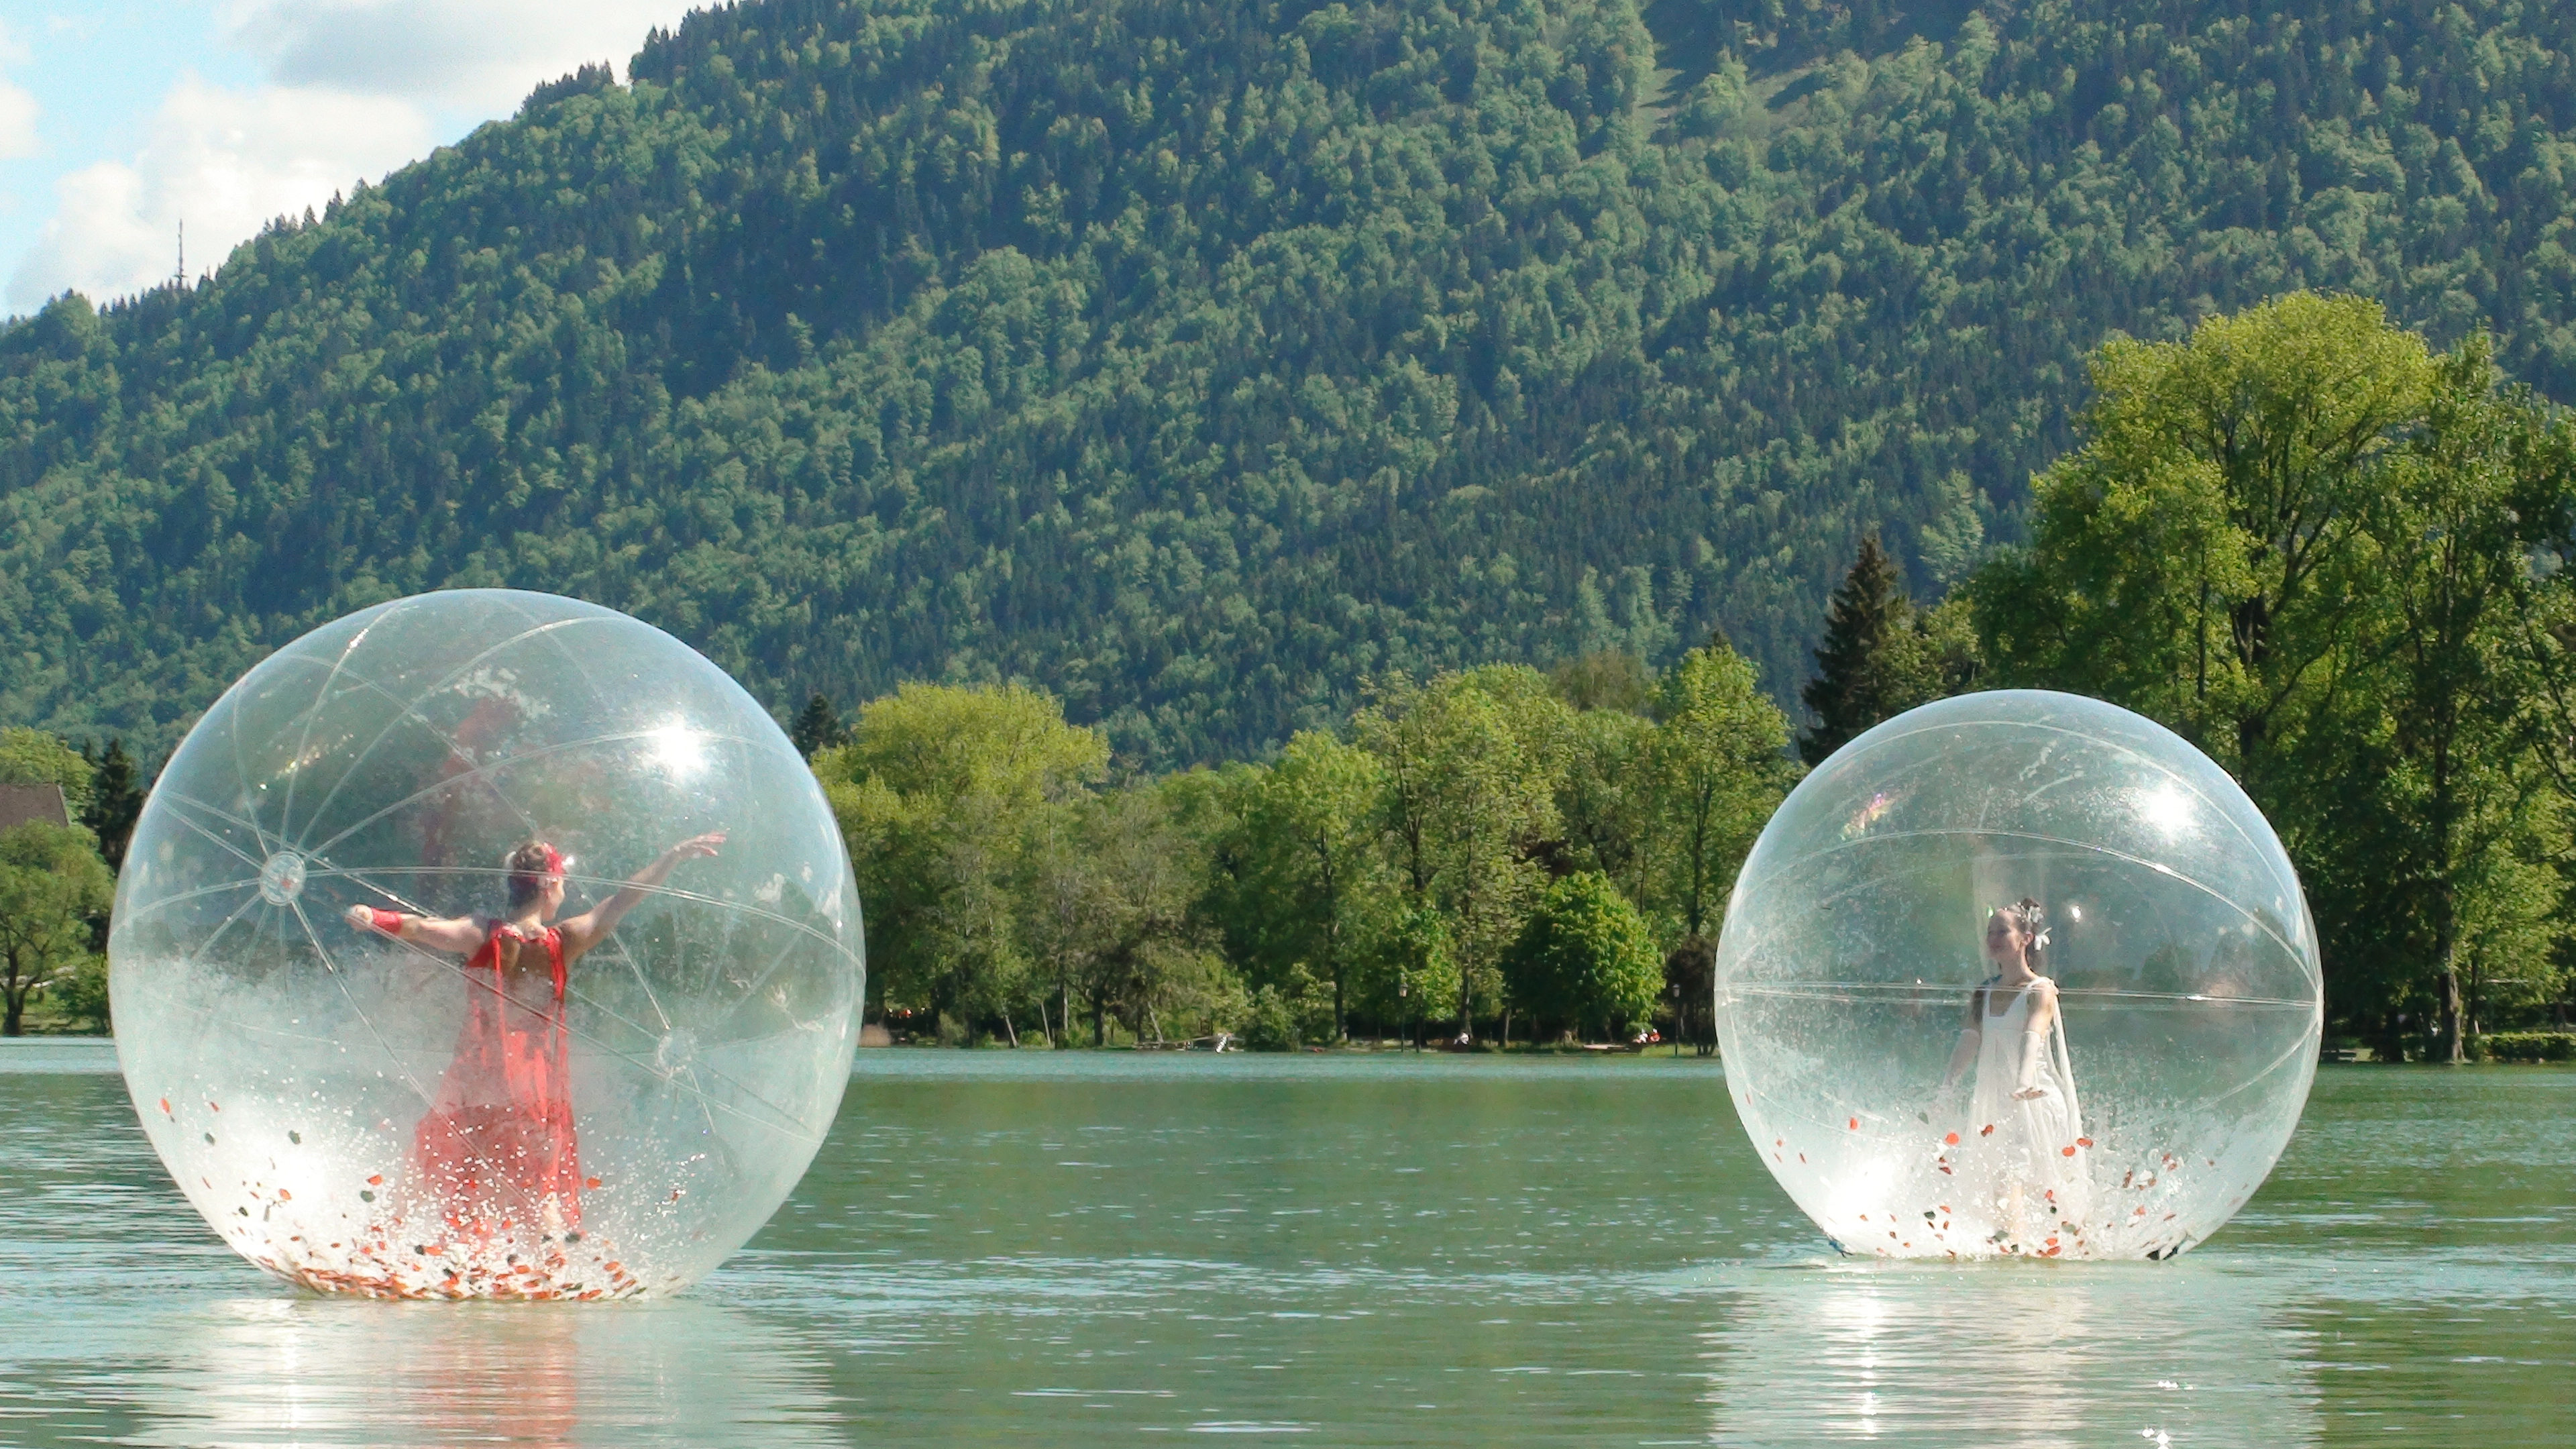 dance and acrobatic performances in the stunning plastic spheres.